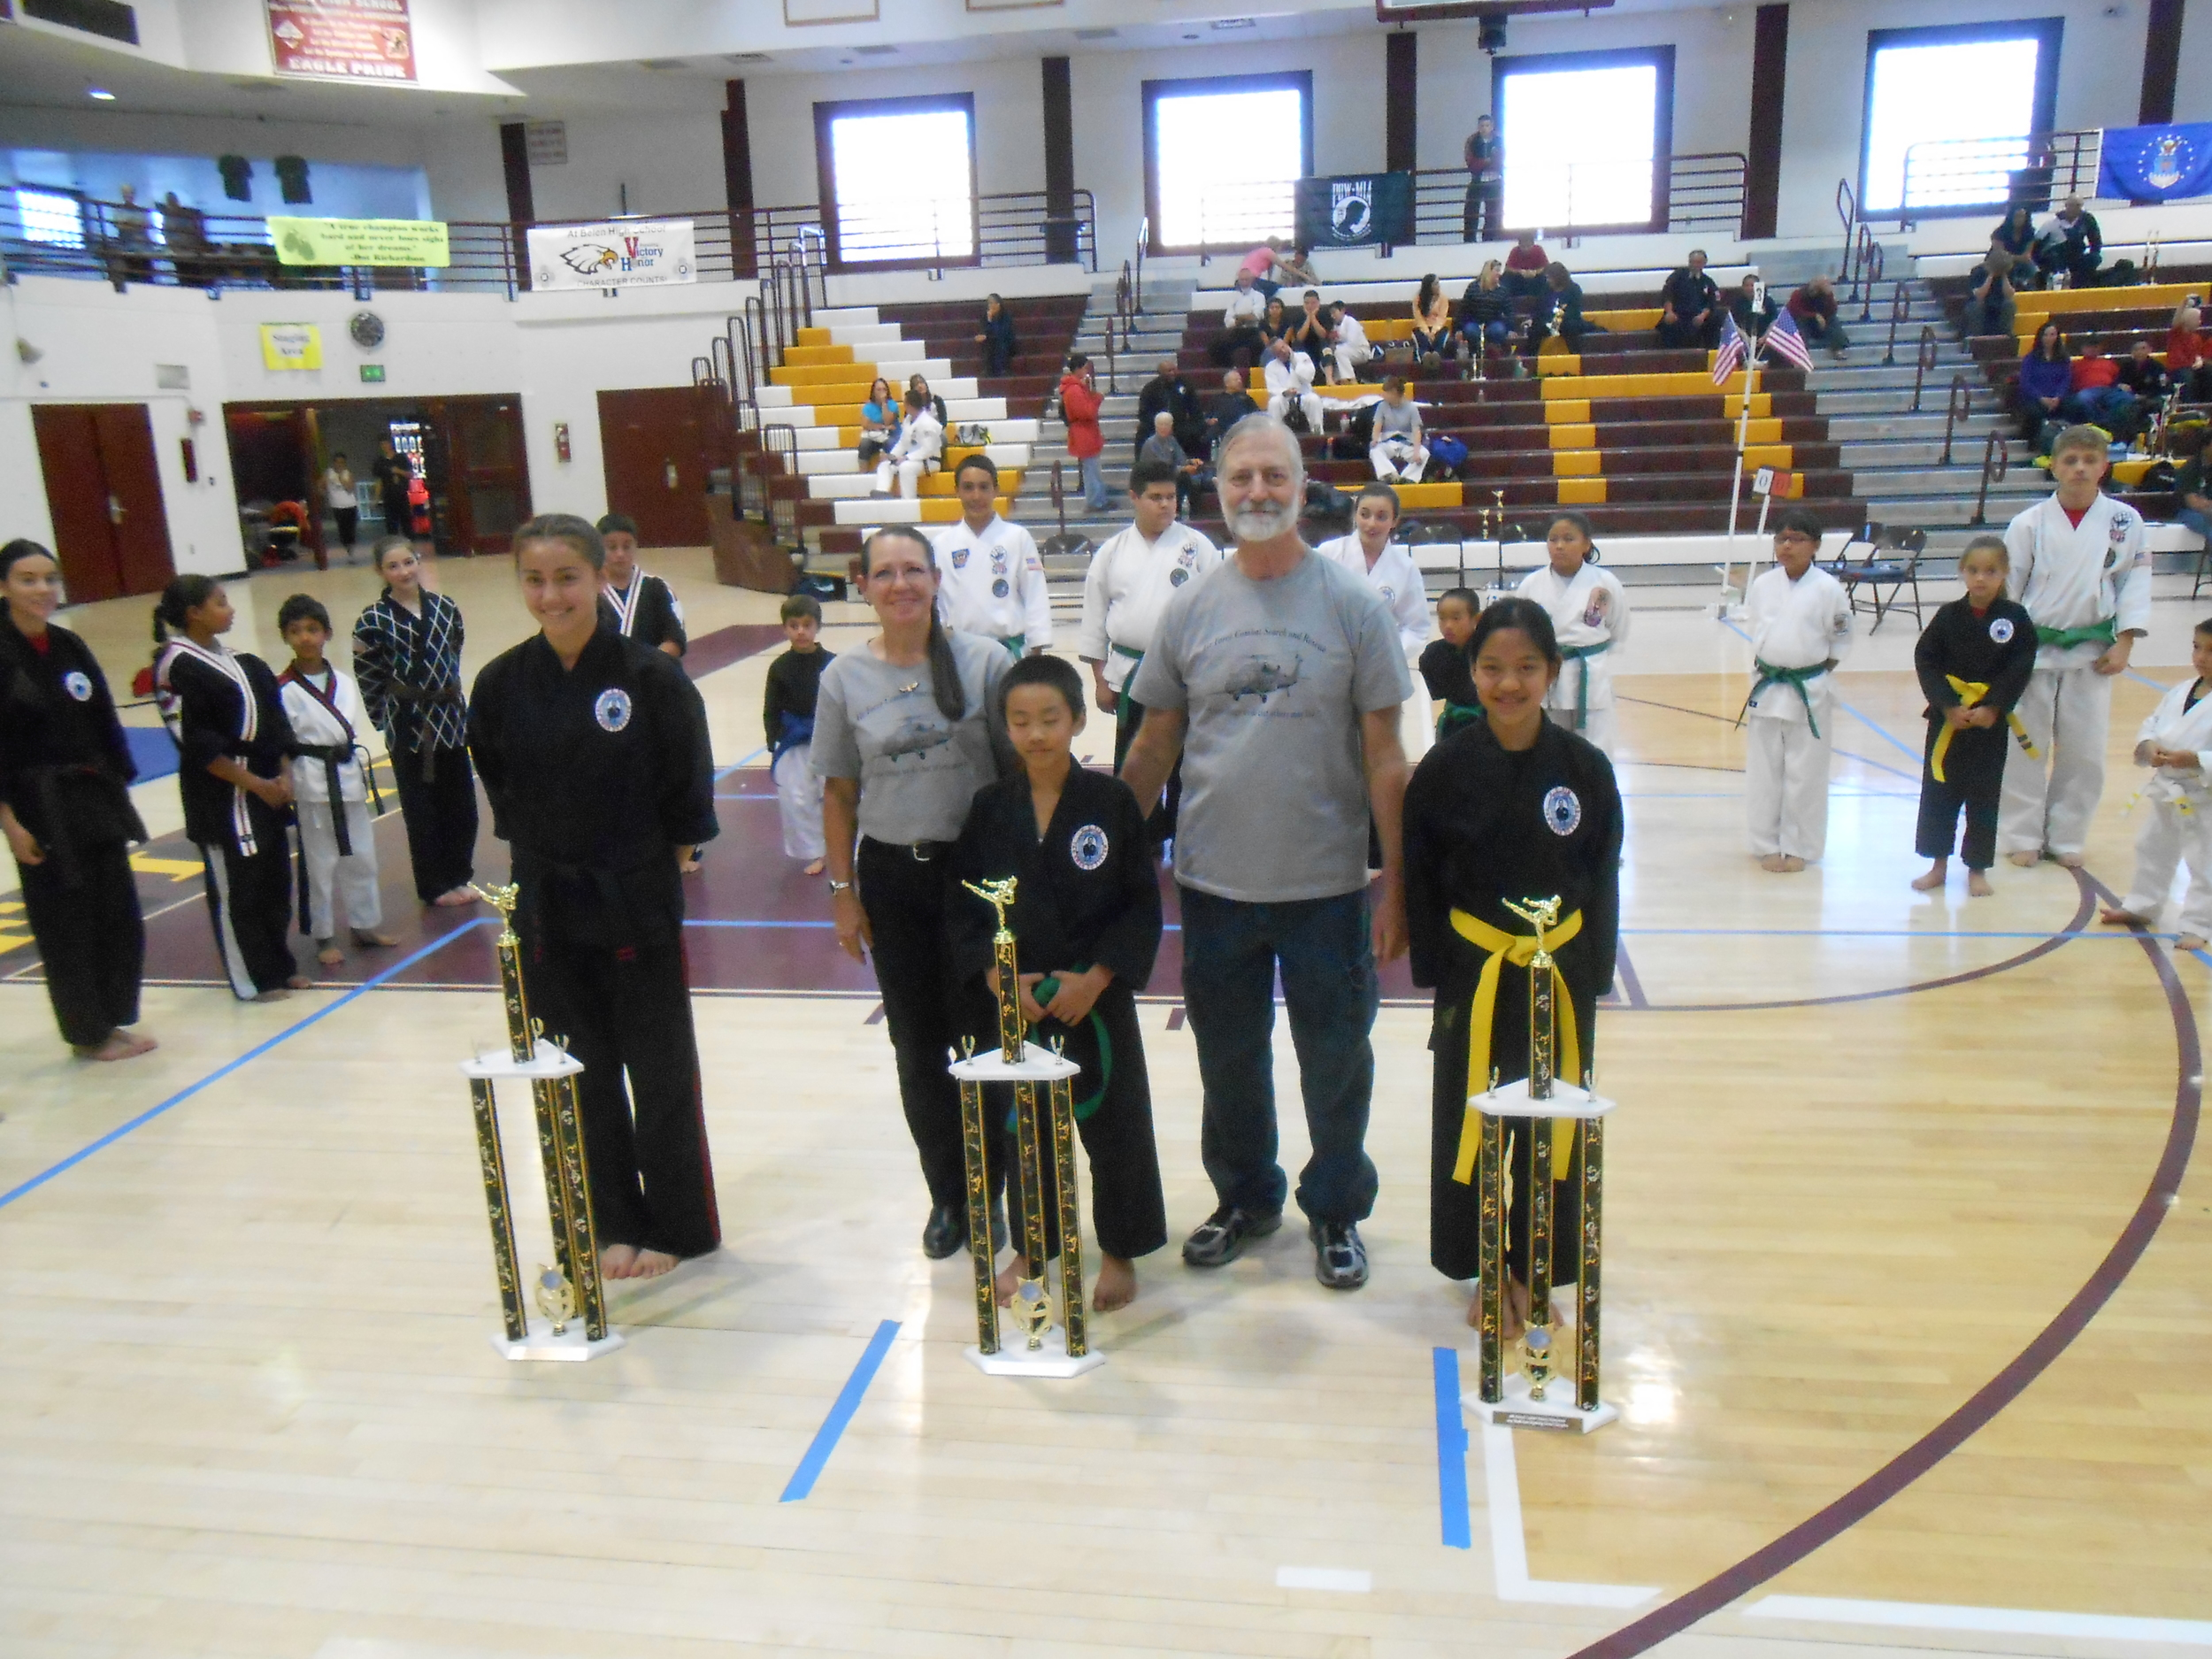 2013 8th Capt. Tammy Tourn 044.jpg